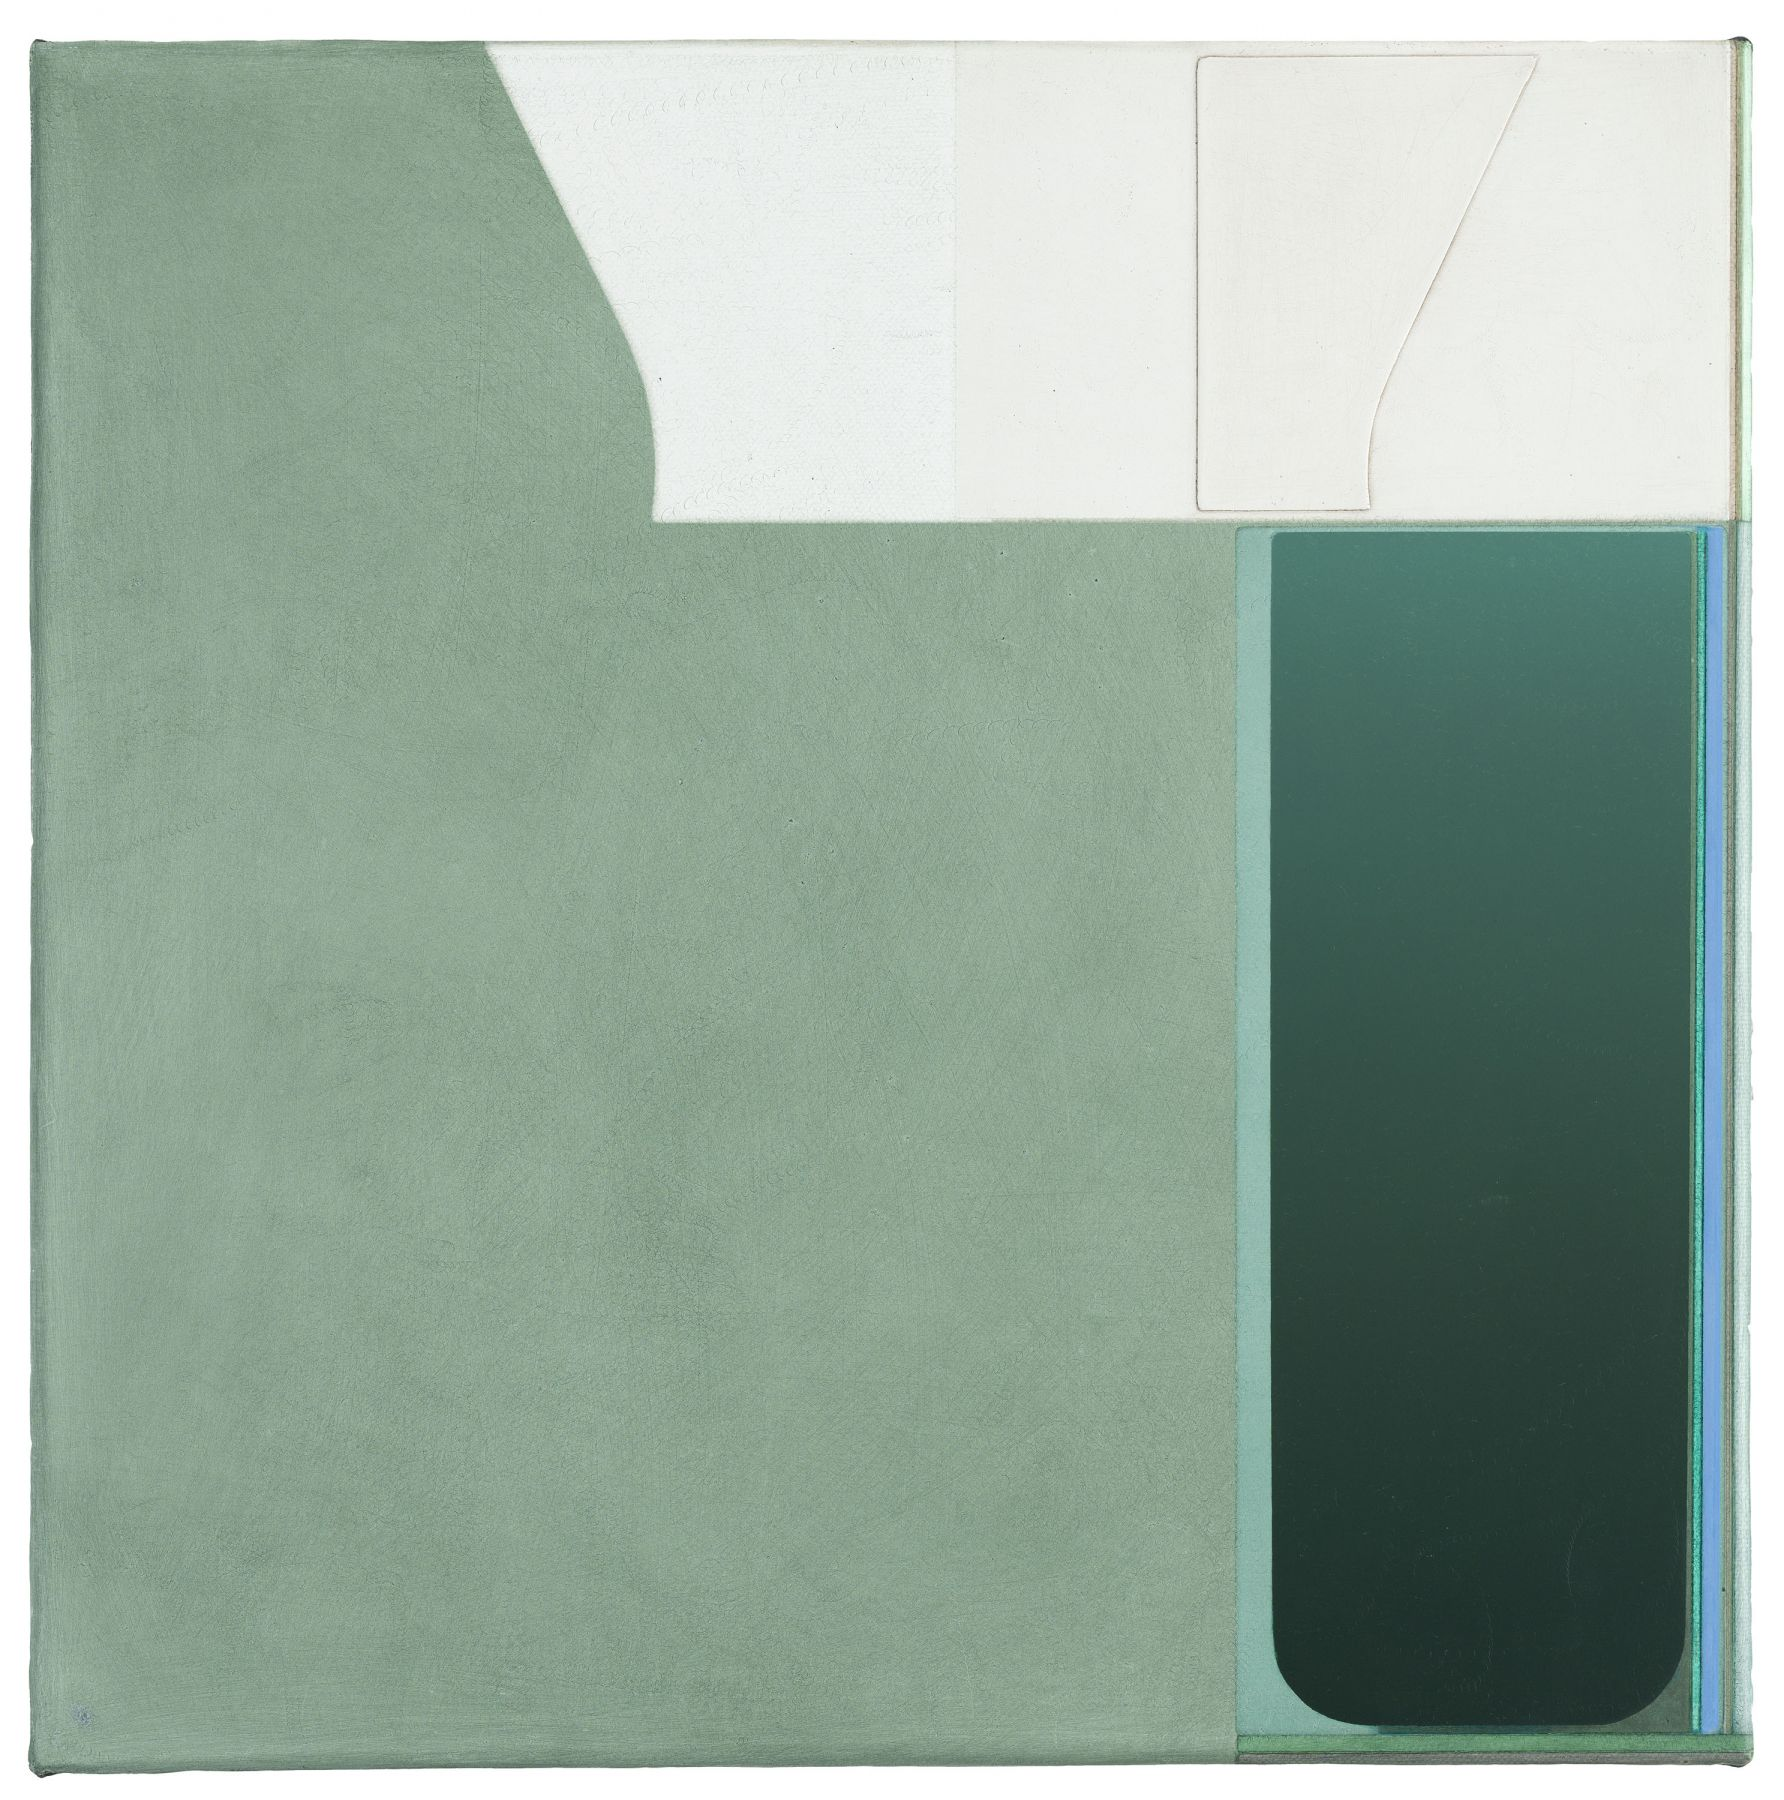 Svenja Deininger painting on view in our New York City gallery